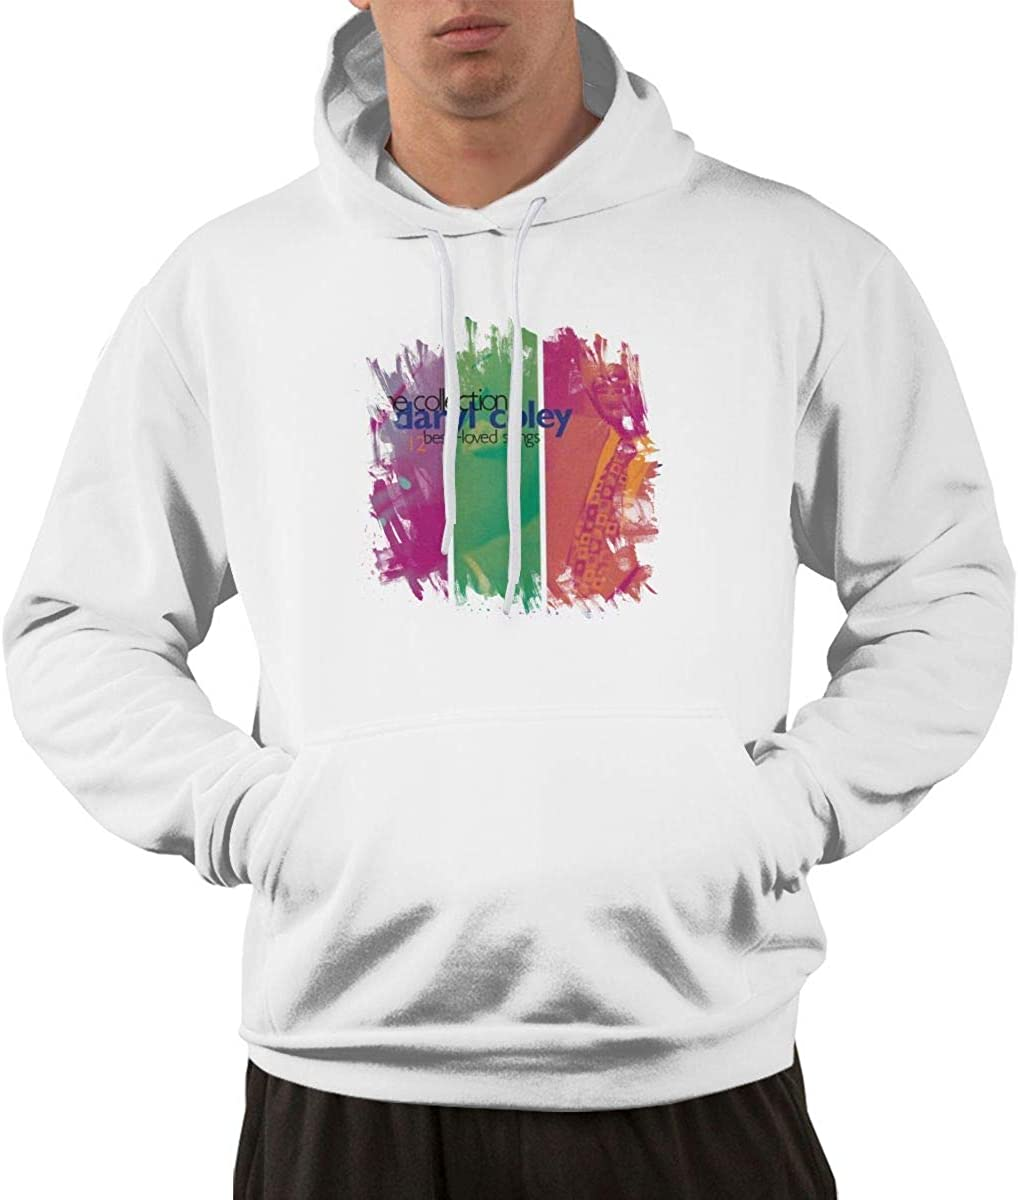 Dary Cole#Th Collectio- 12 BES Love Song Men's Hooded Pocket Sweater White